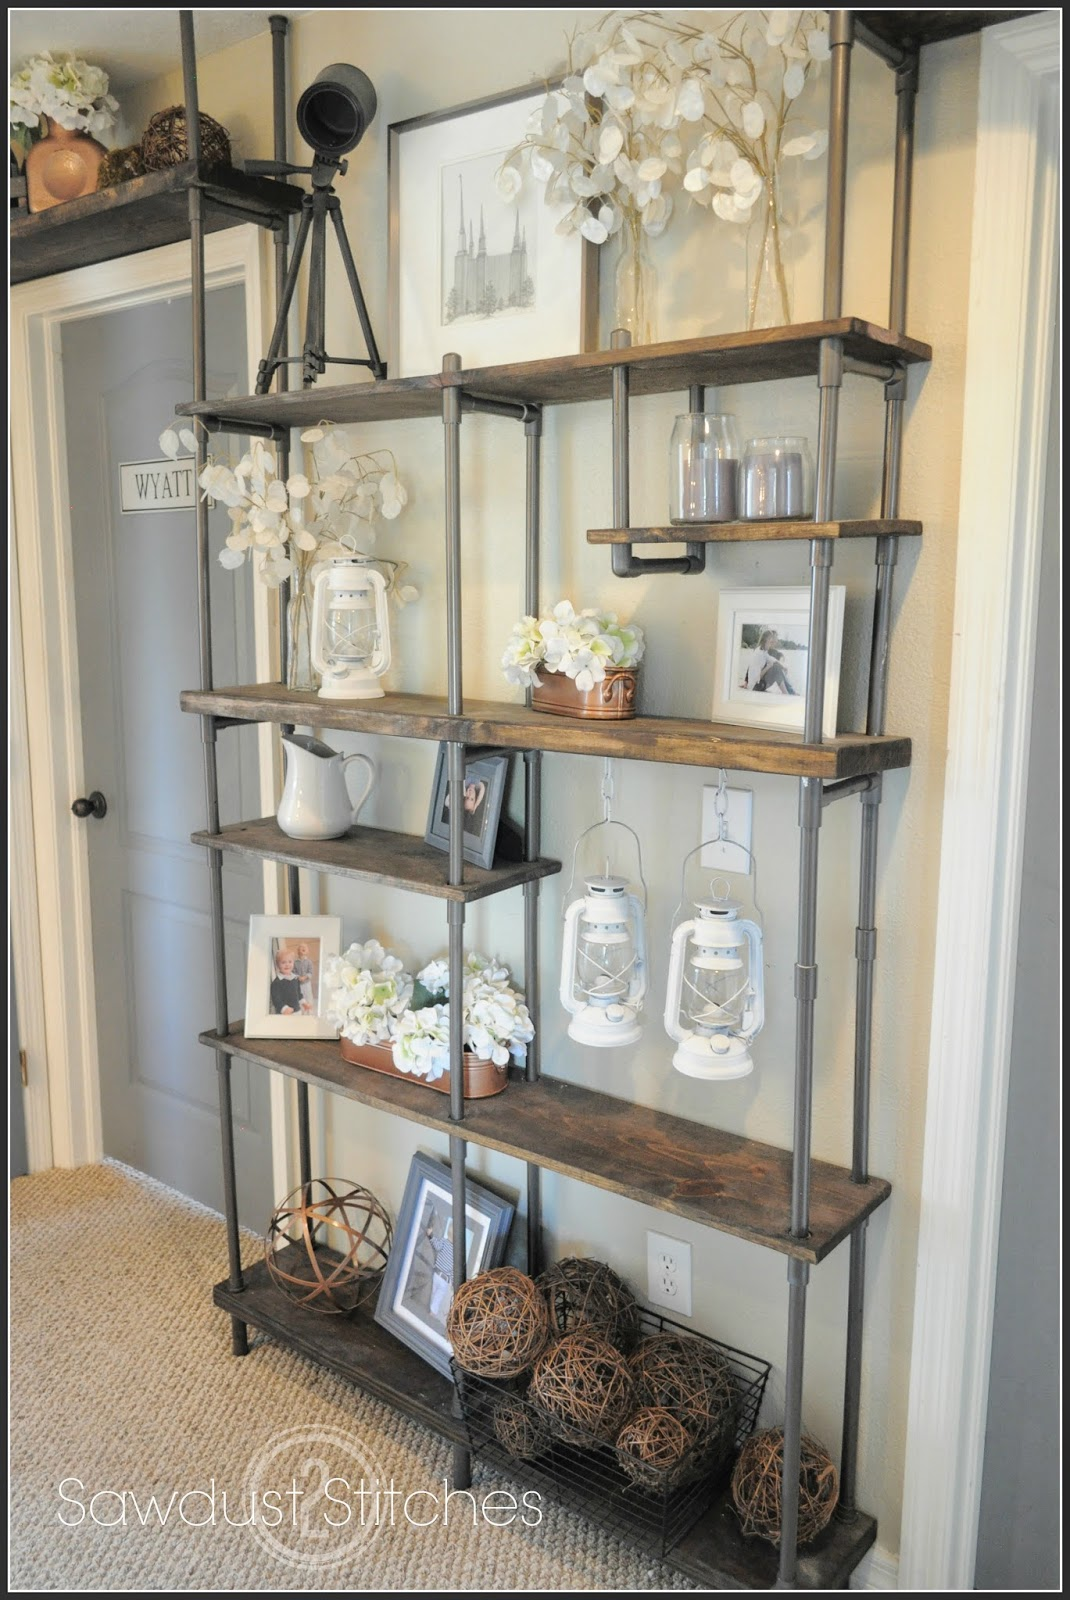 Build a CHEAP industrial-style shelf by using PVC instead of metal ...